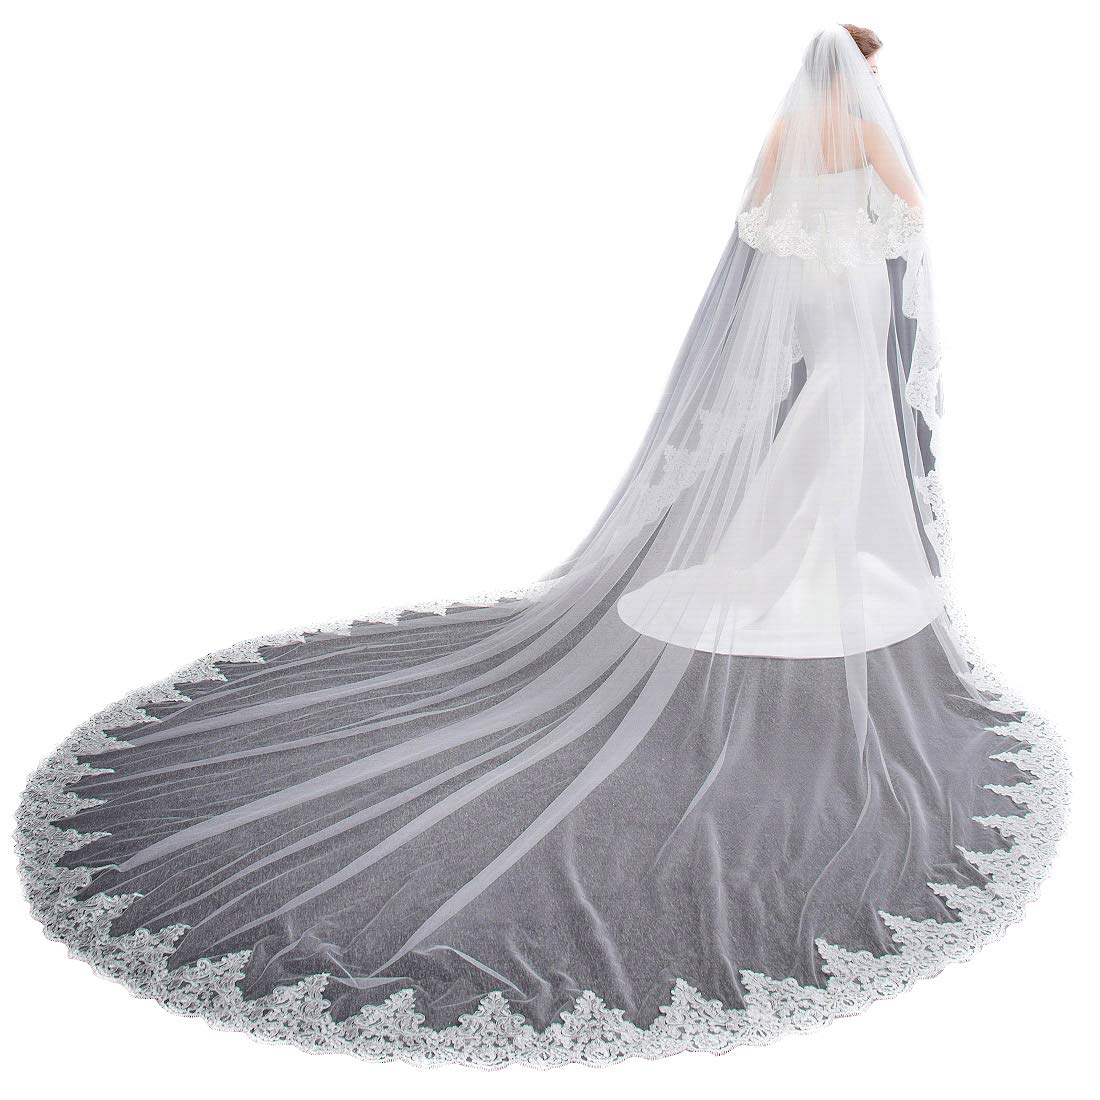 EllieHouse Women's 2 Tier Cathedral Lace Ivory Wedding Bridal Veil With Comb L01IV by EllieHouse